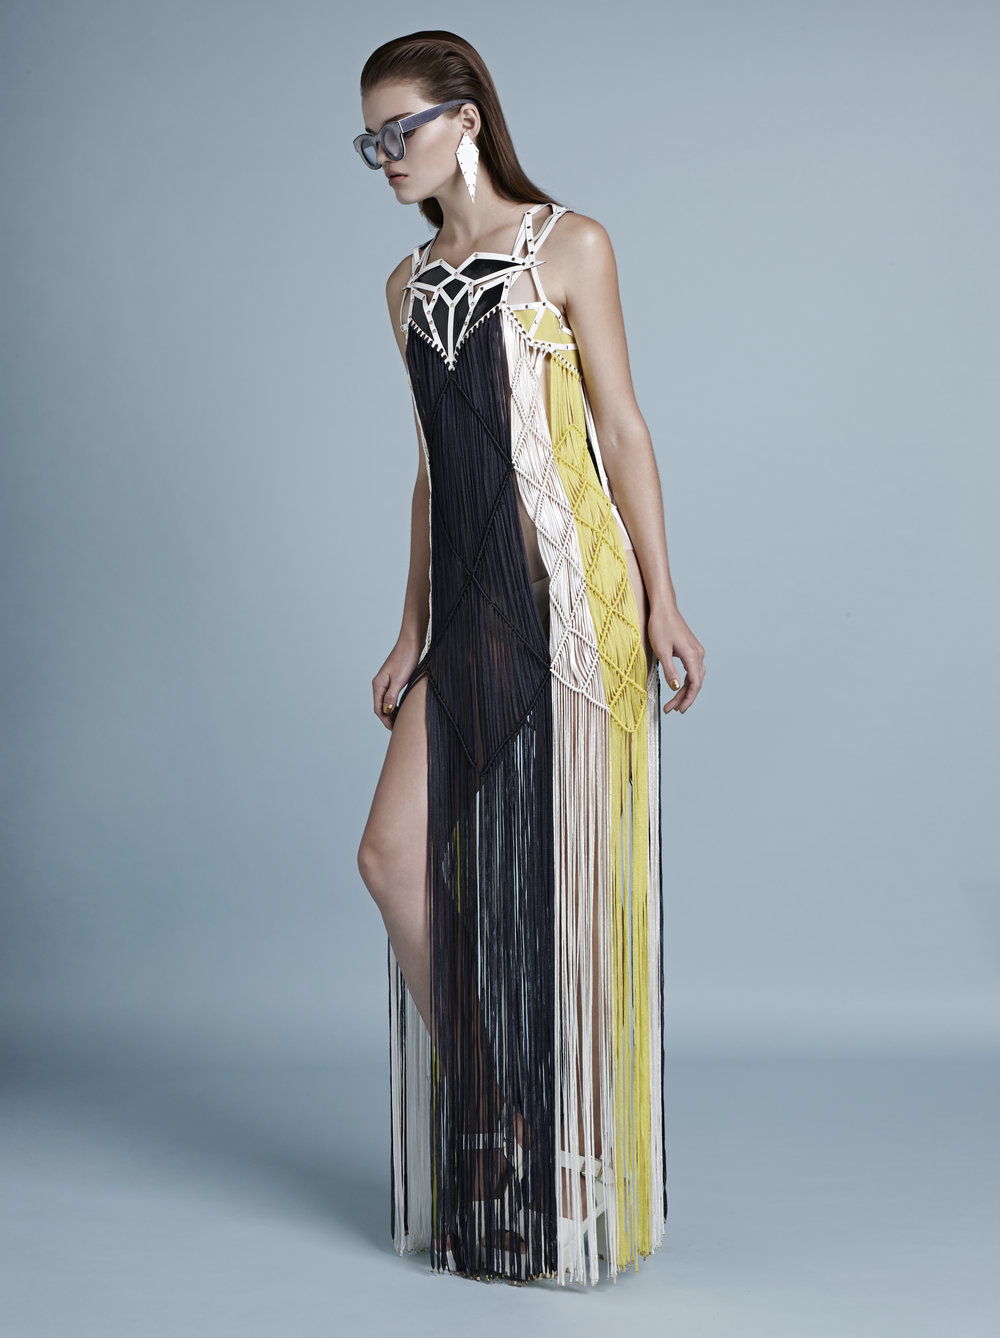 JaneBowler SS15 dress.jpg